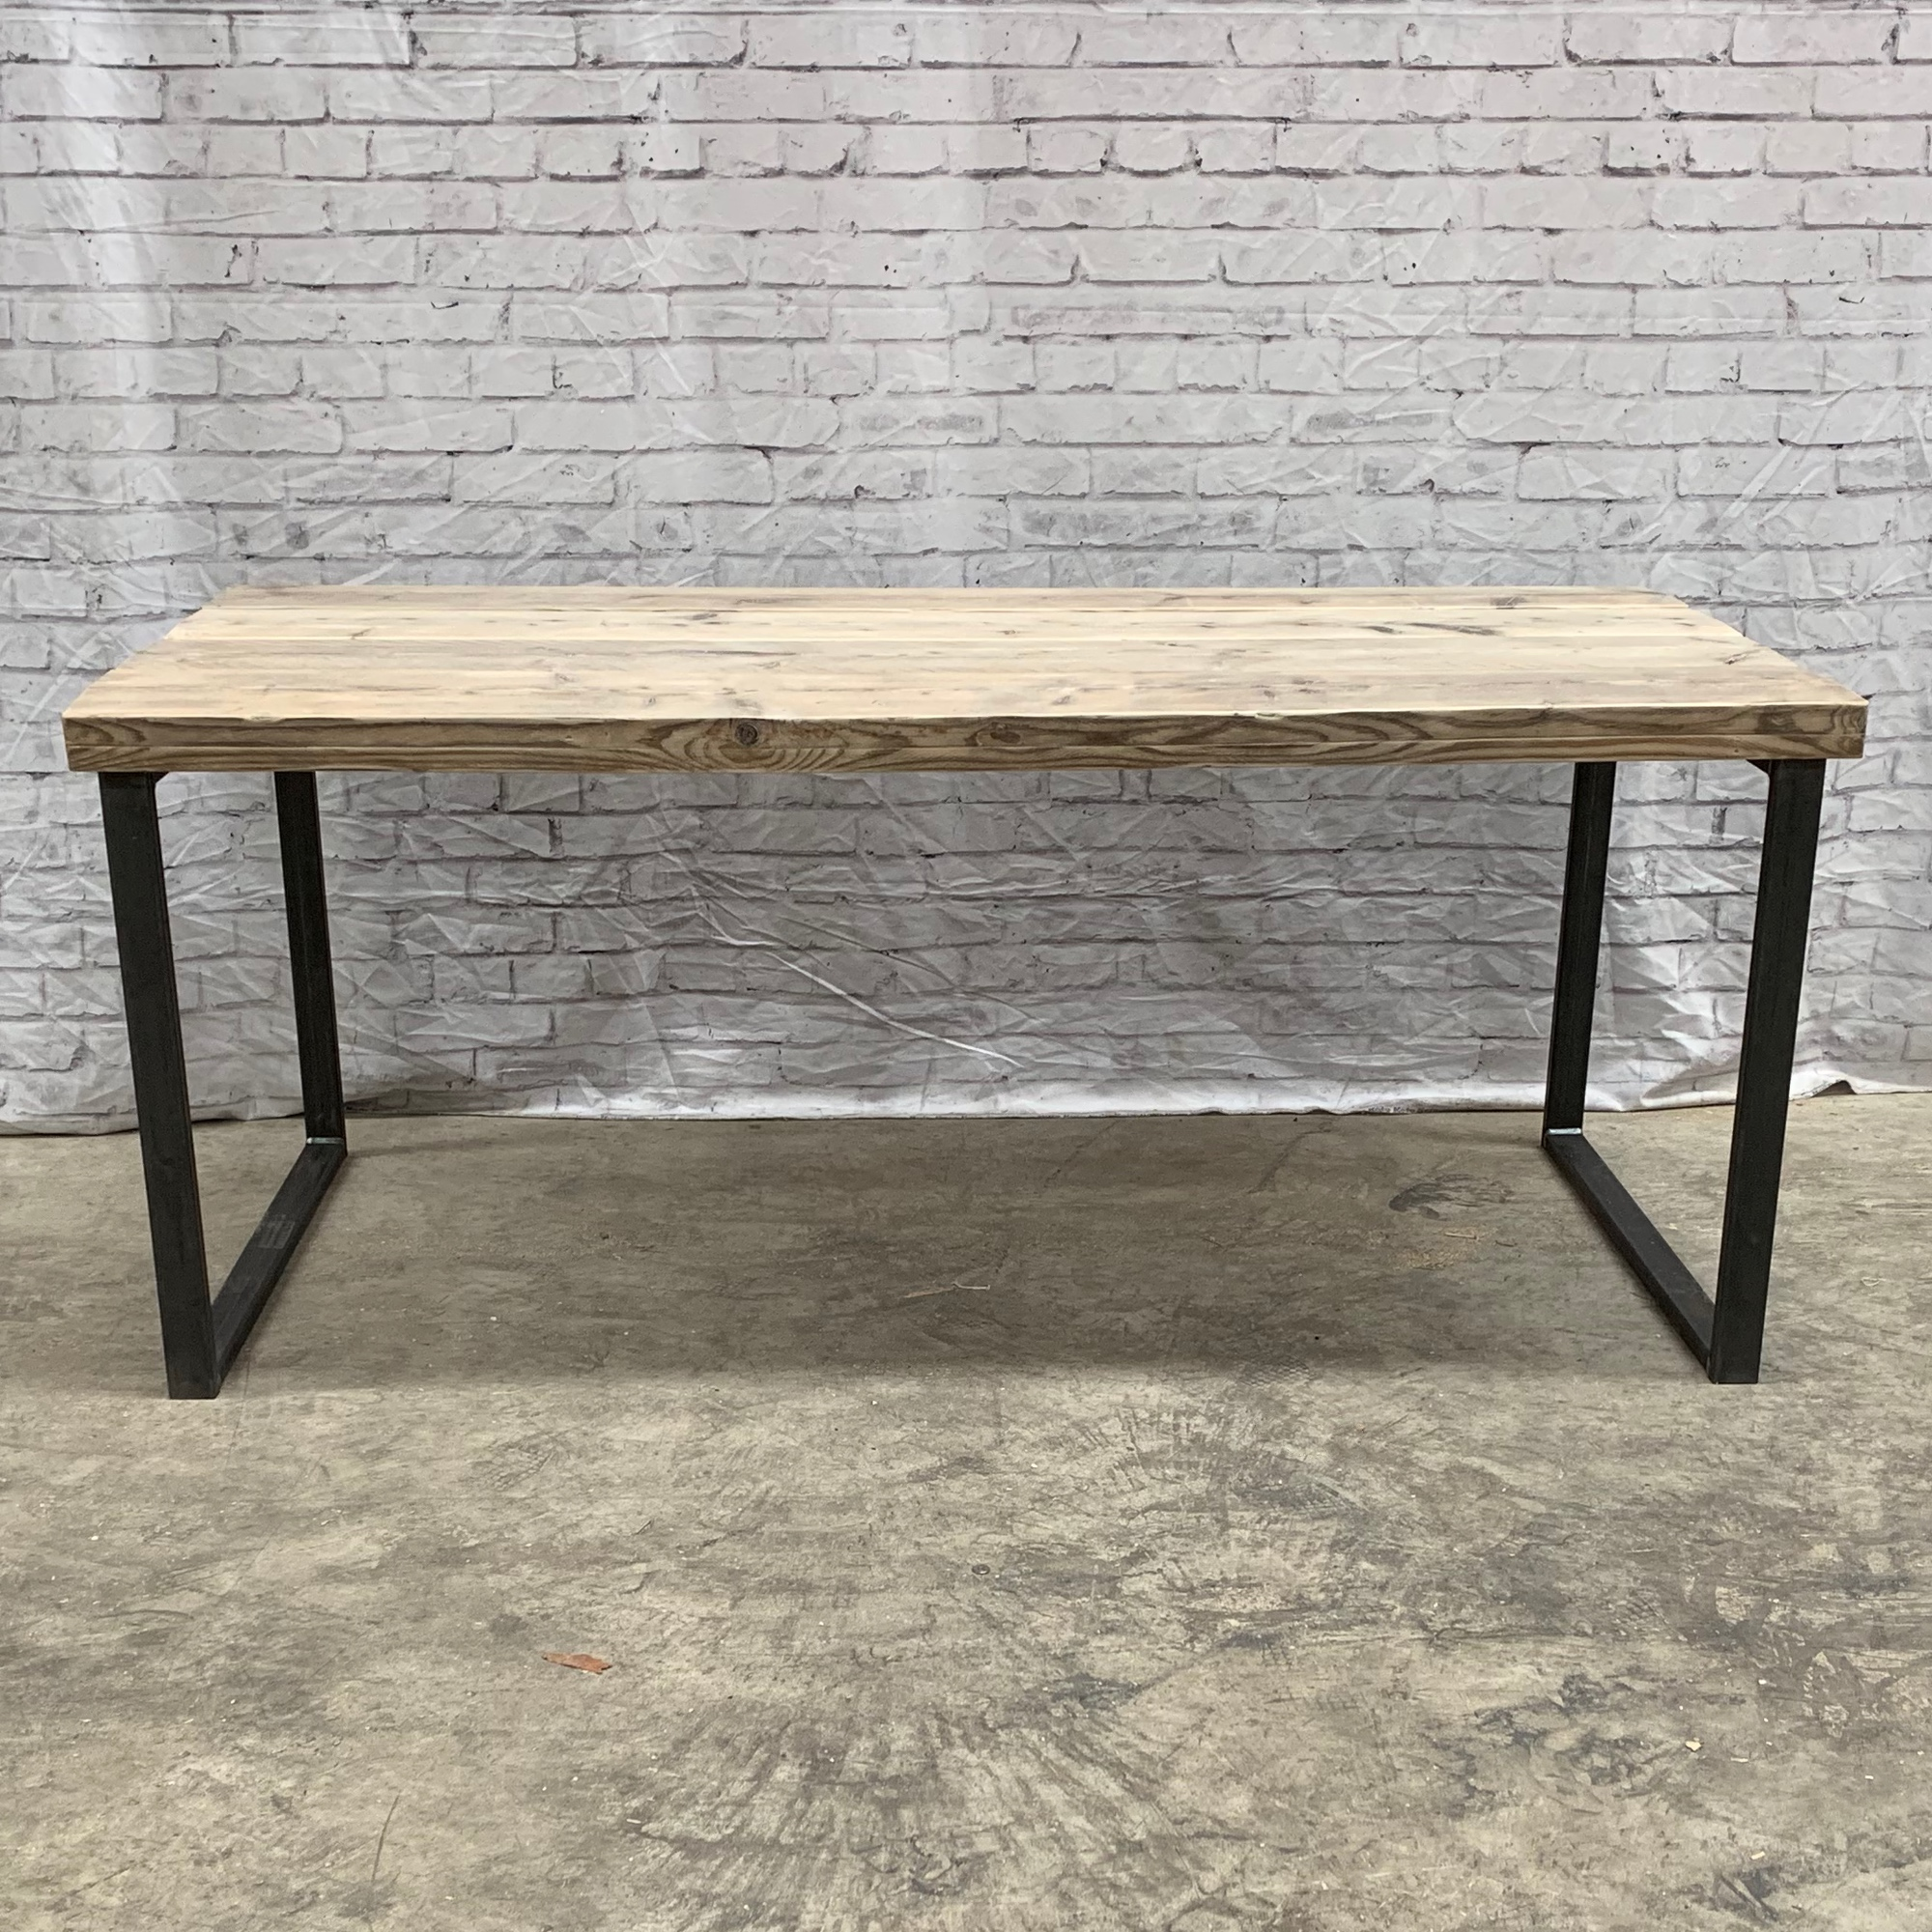 Picture of: Solid Steel Dining Table 4 10 Seater Rustic Industrial Reclaimed Wood Tab10 Ebay